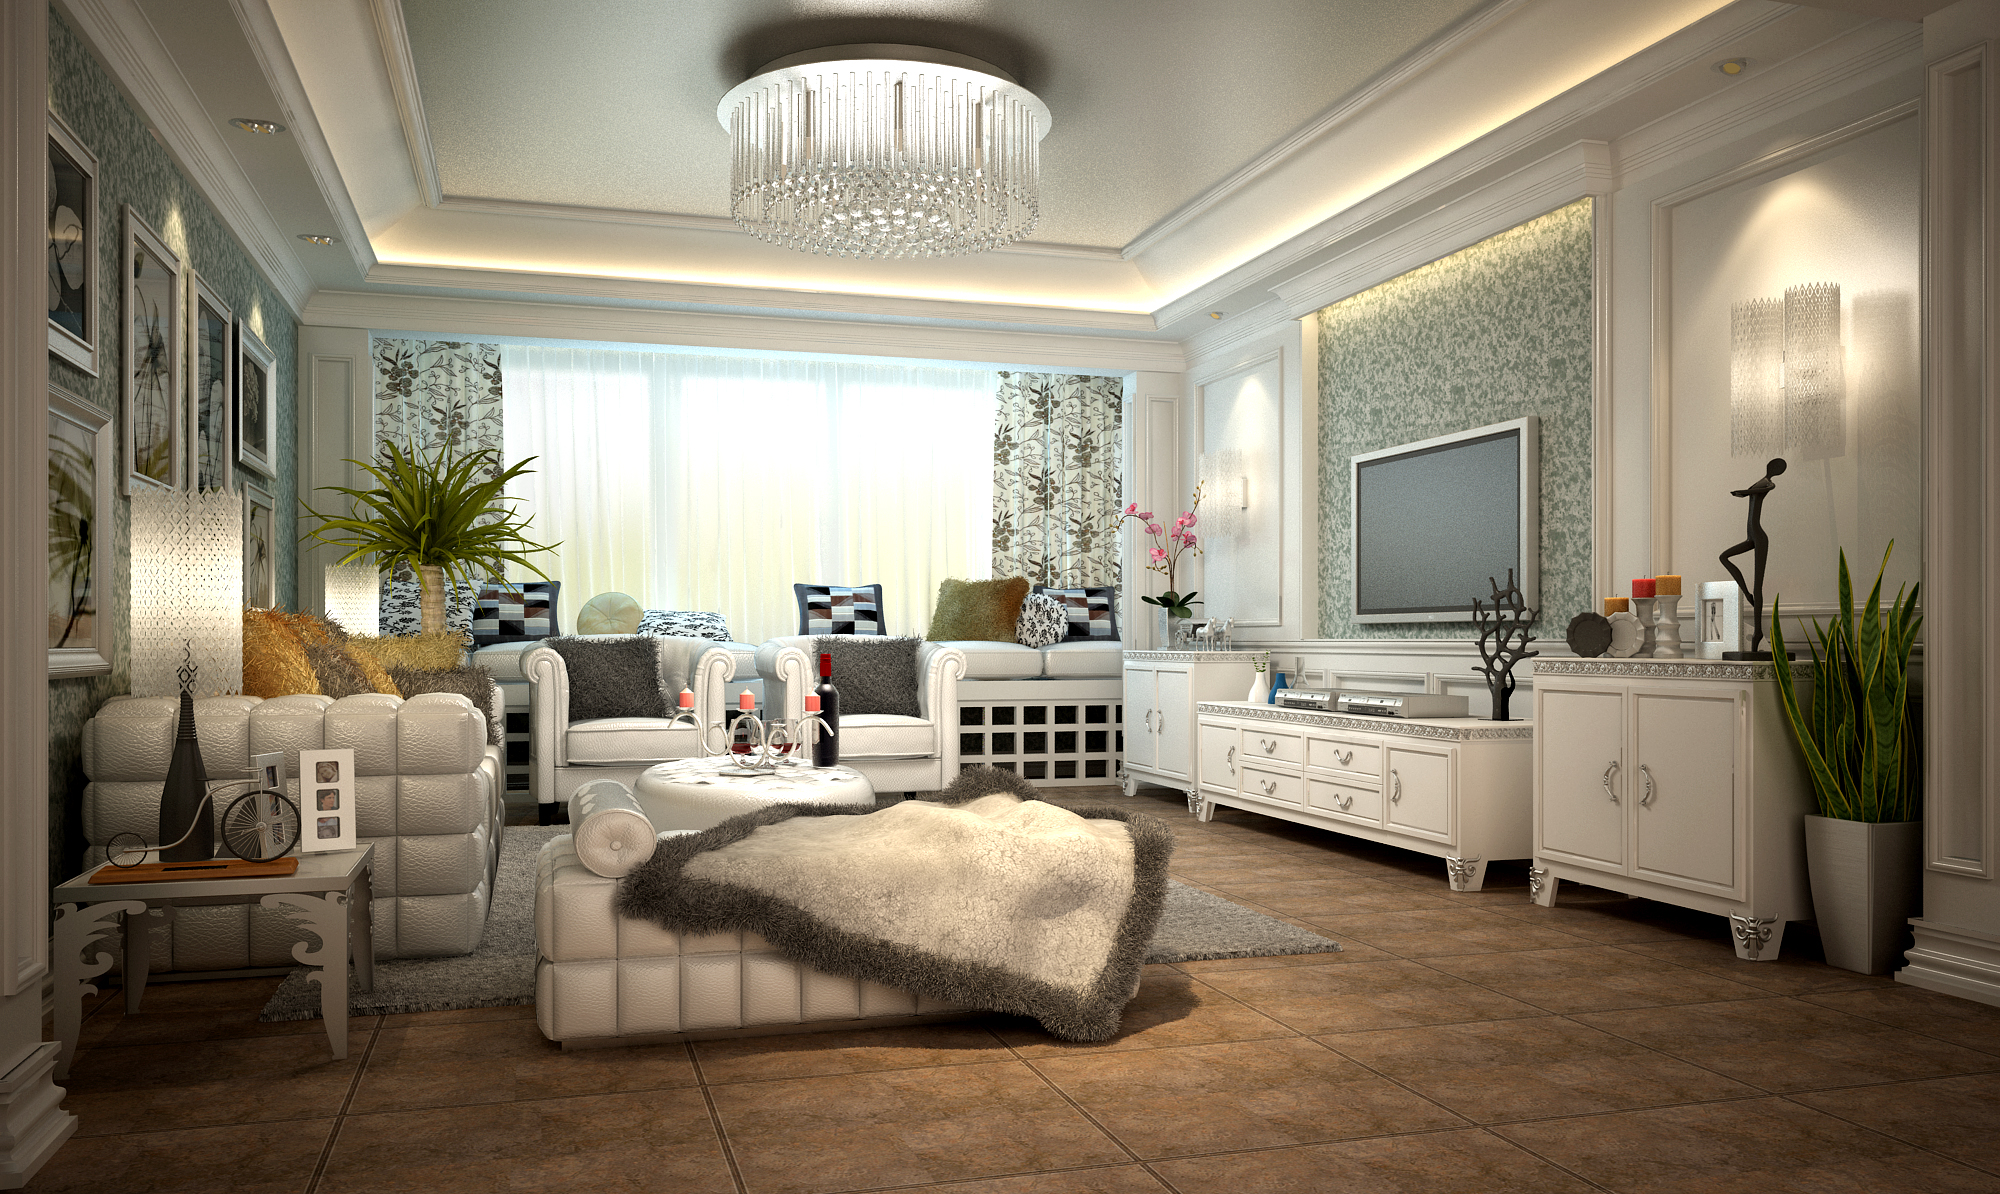 luxury living room ideas for new year's eve